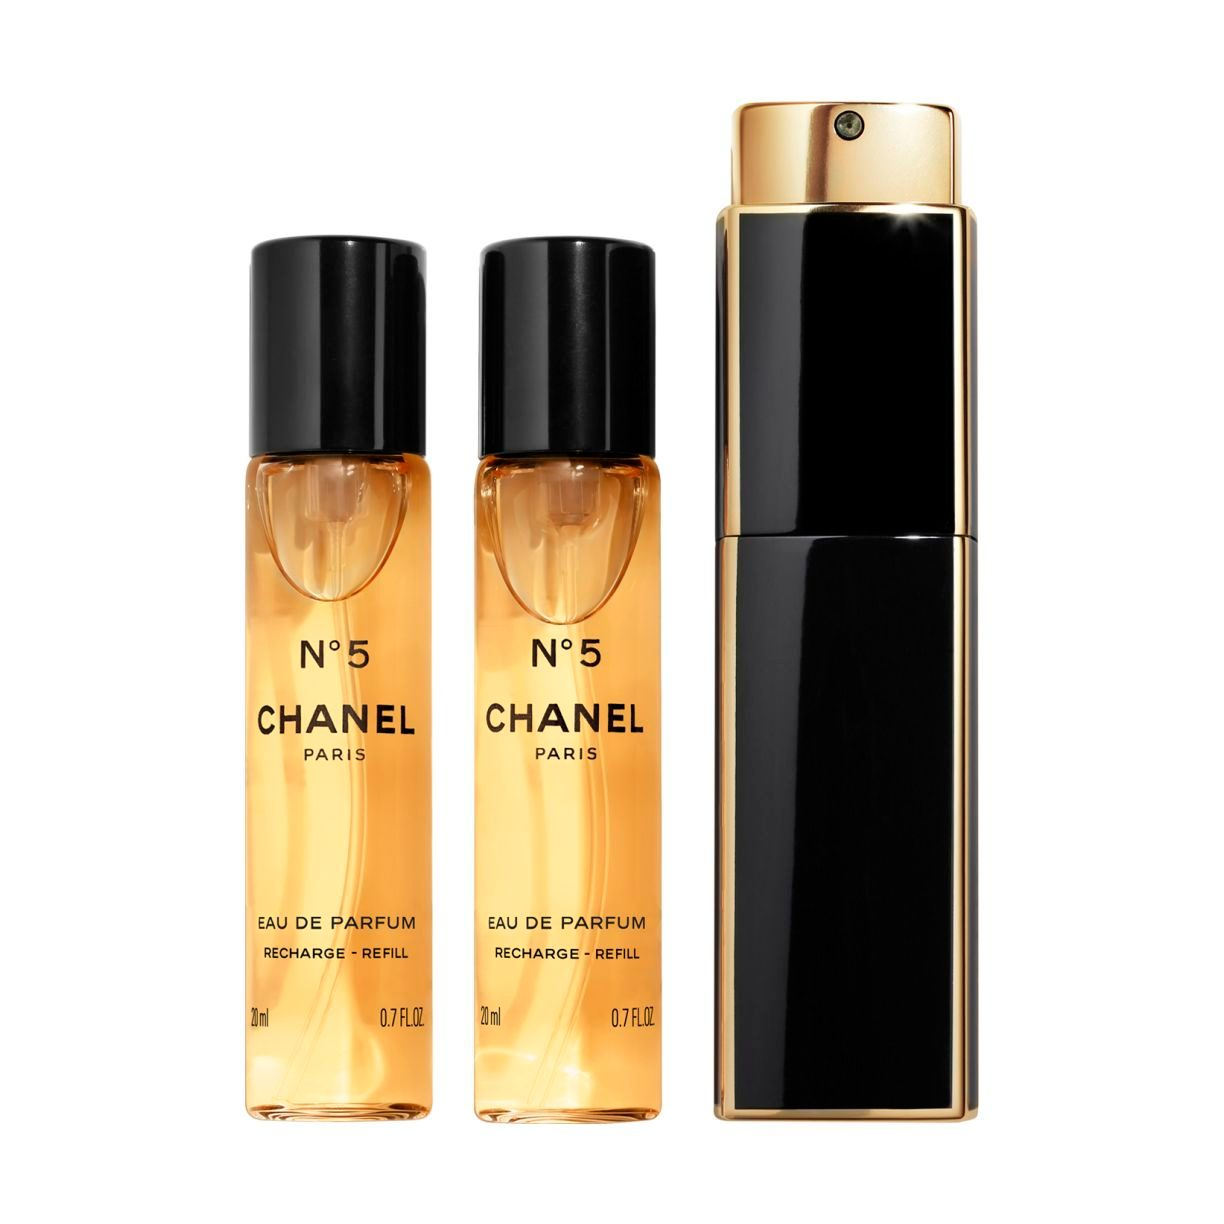 N°5 EAU DE PARFUM PURSE SPRAY